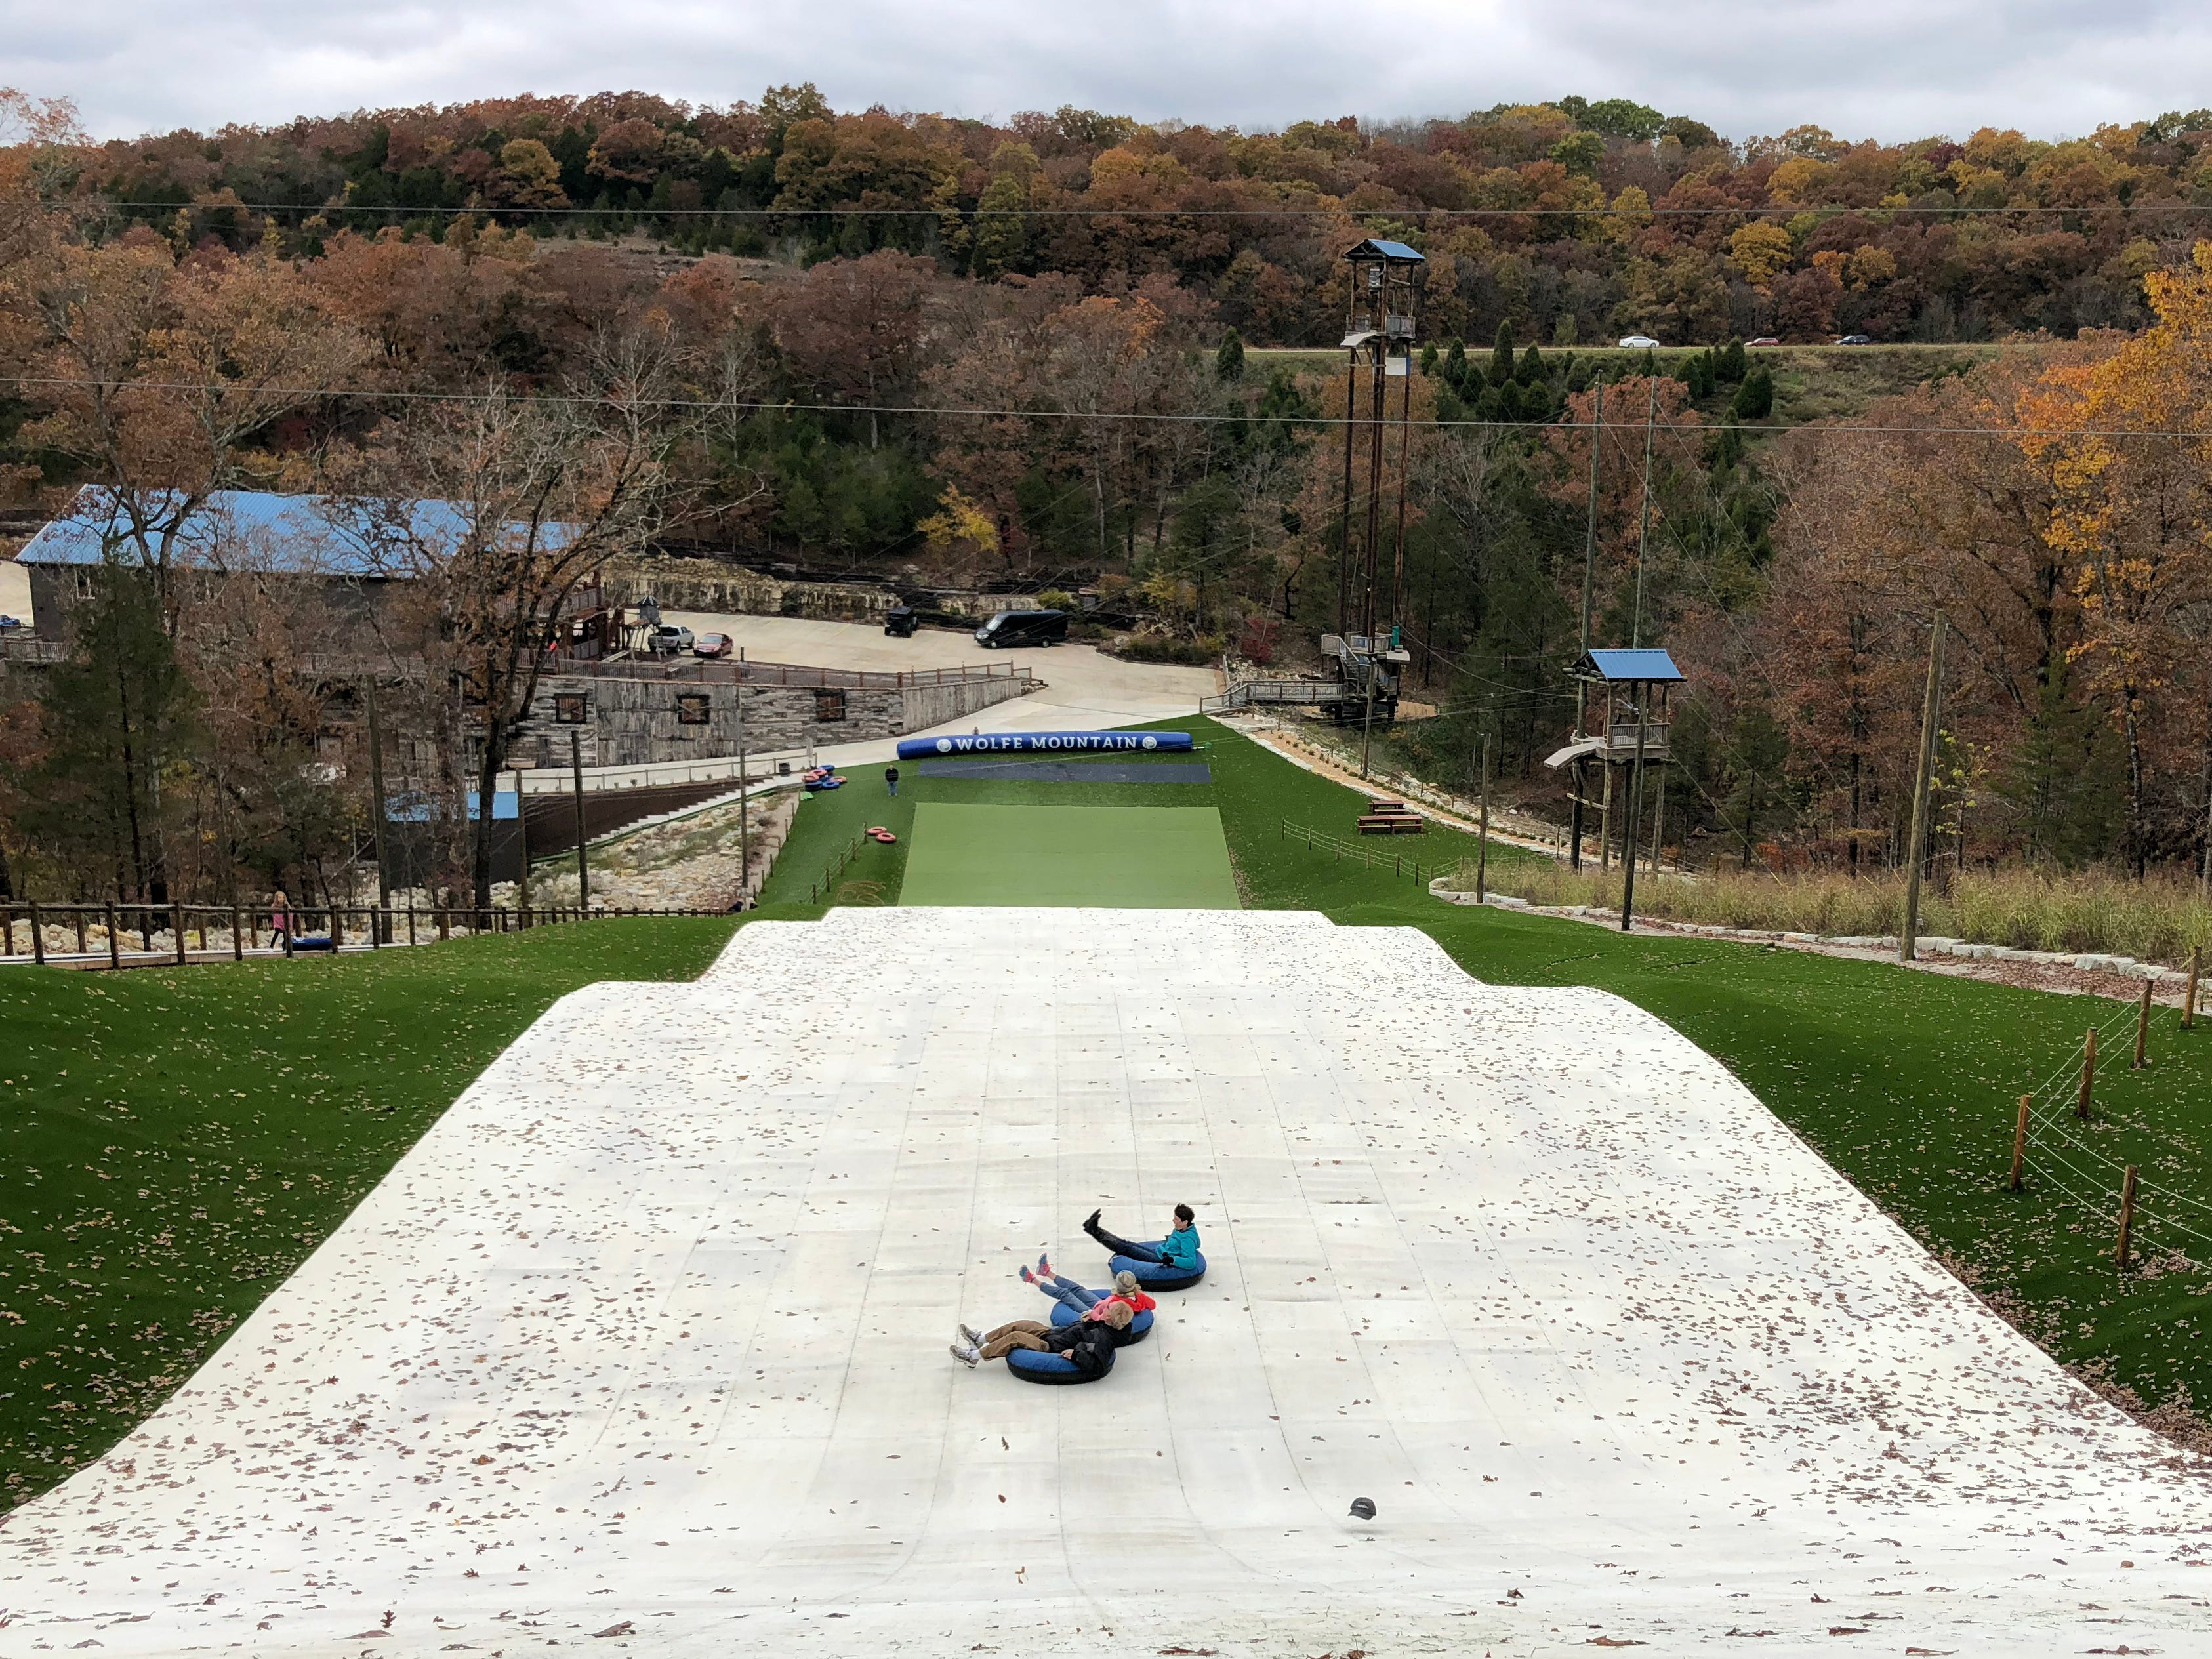 At the Snowflex hill at Wolfe Mountain, visitors pile into tubes and soar down a steep slope covered in a synthetic material that mimics snow.